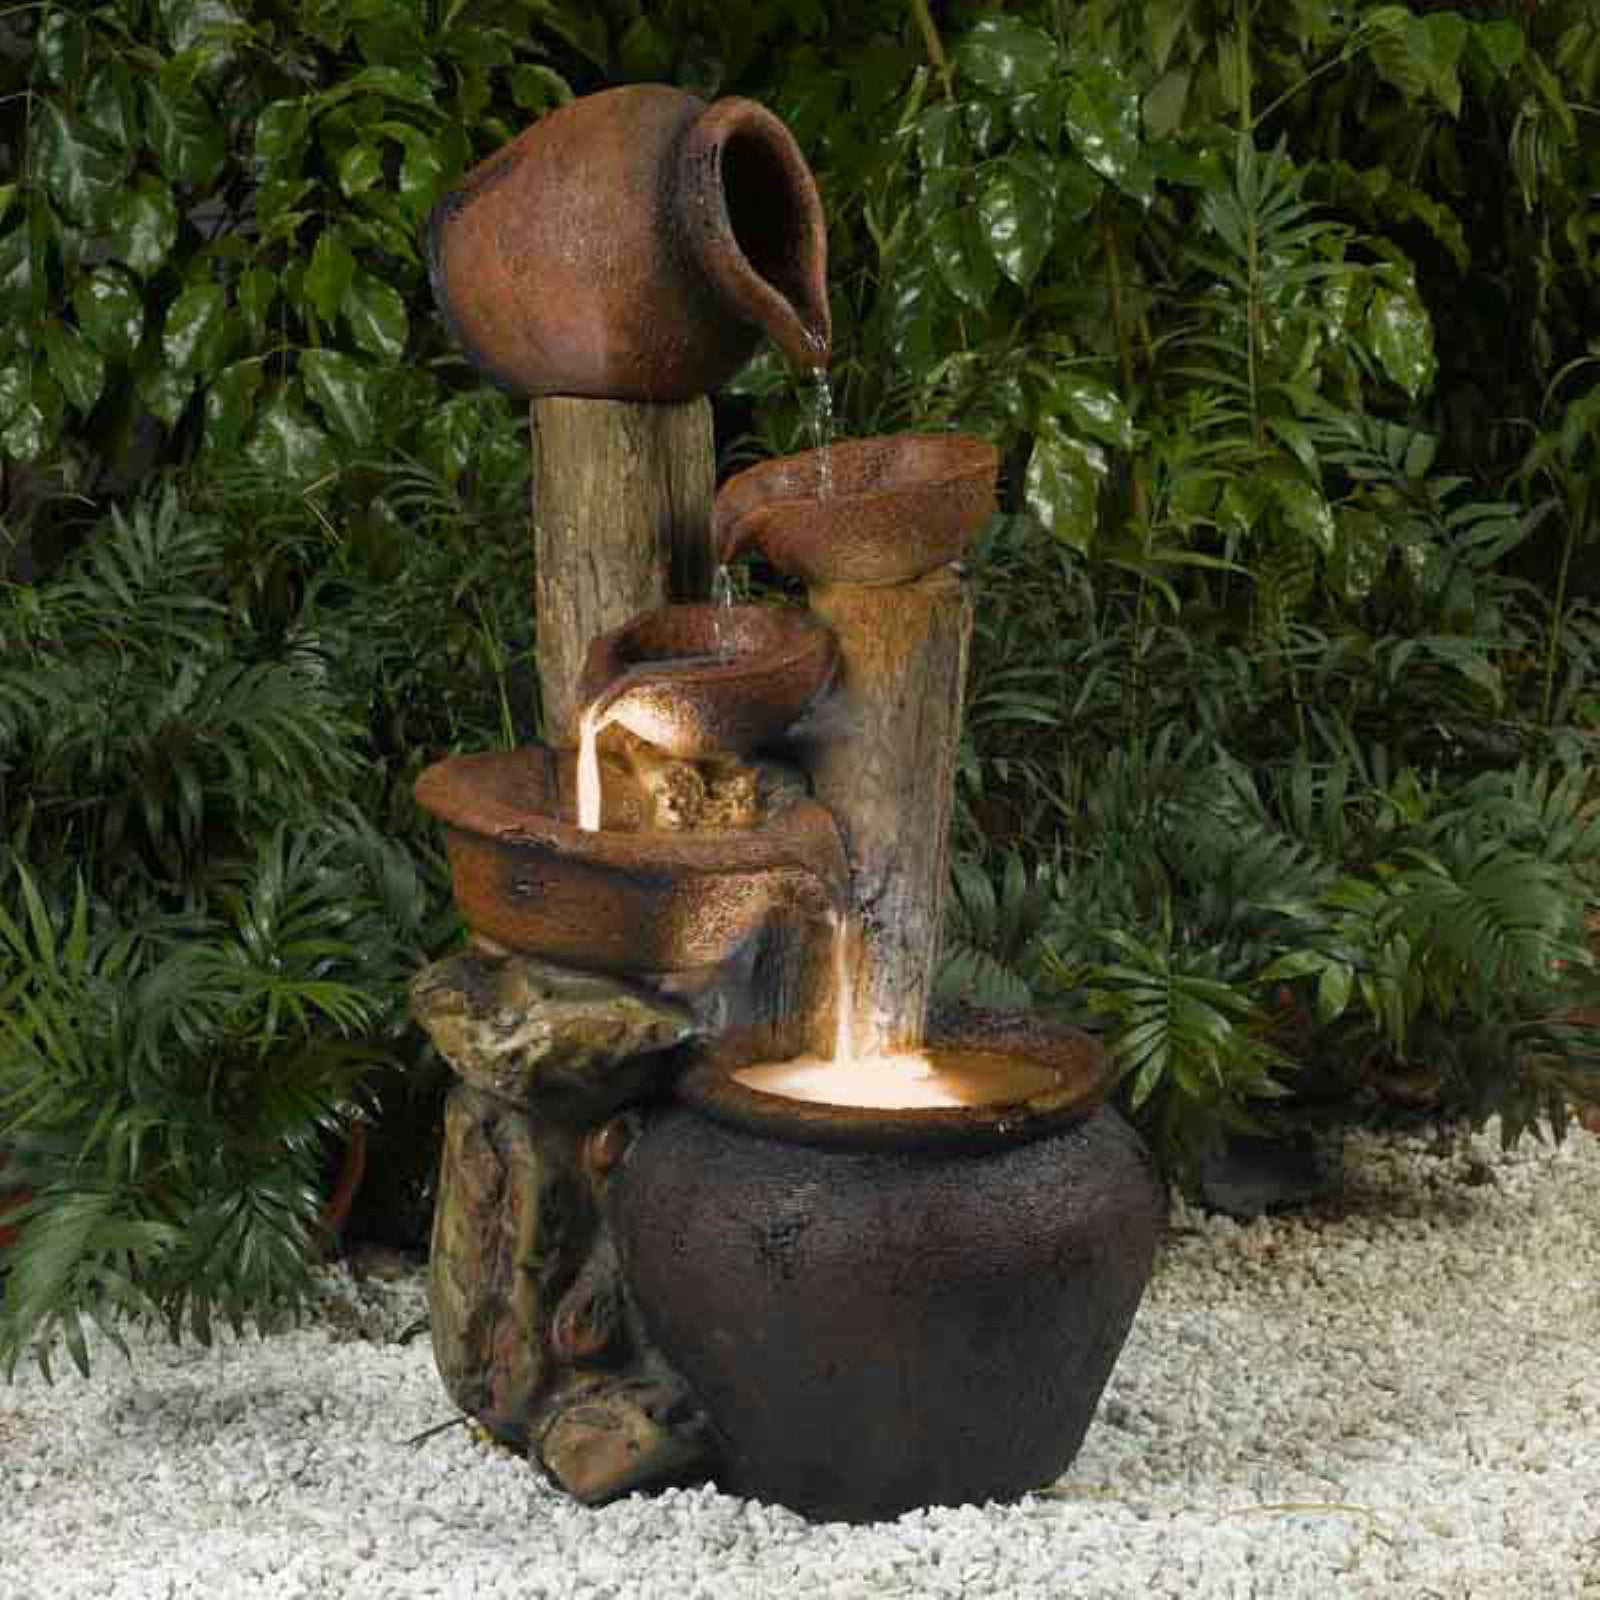 Jeco Pentole Pot Indoor Outdoor Fountain with Illumination by Fountains